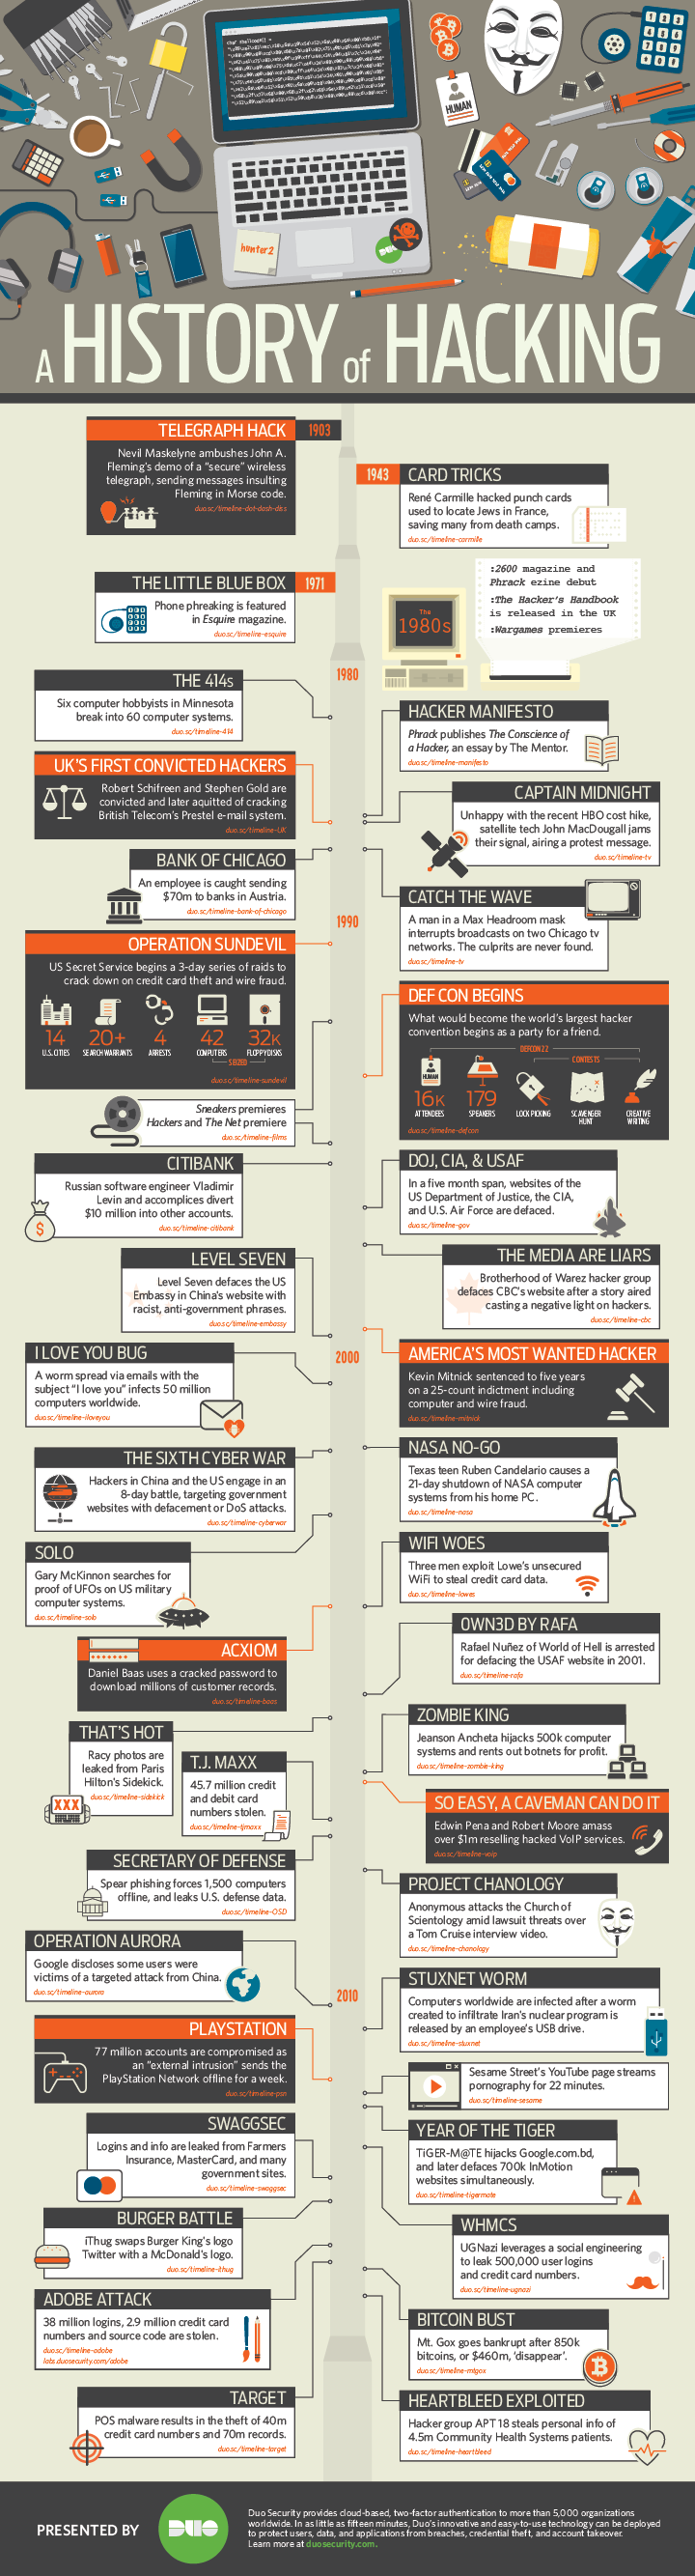 A HISTORY OF HACKING   Did you know the first wireless hack occurred over a century ago? Or that a French computer expert hacked the Nazis to save countless lives? Hacking is not always perpetrated by a nefarious individual in a dark basement. This infographic seeks to shed light on some of the most notable hacks in recent history.